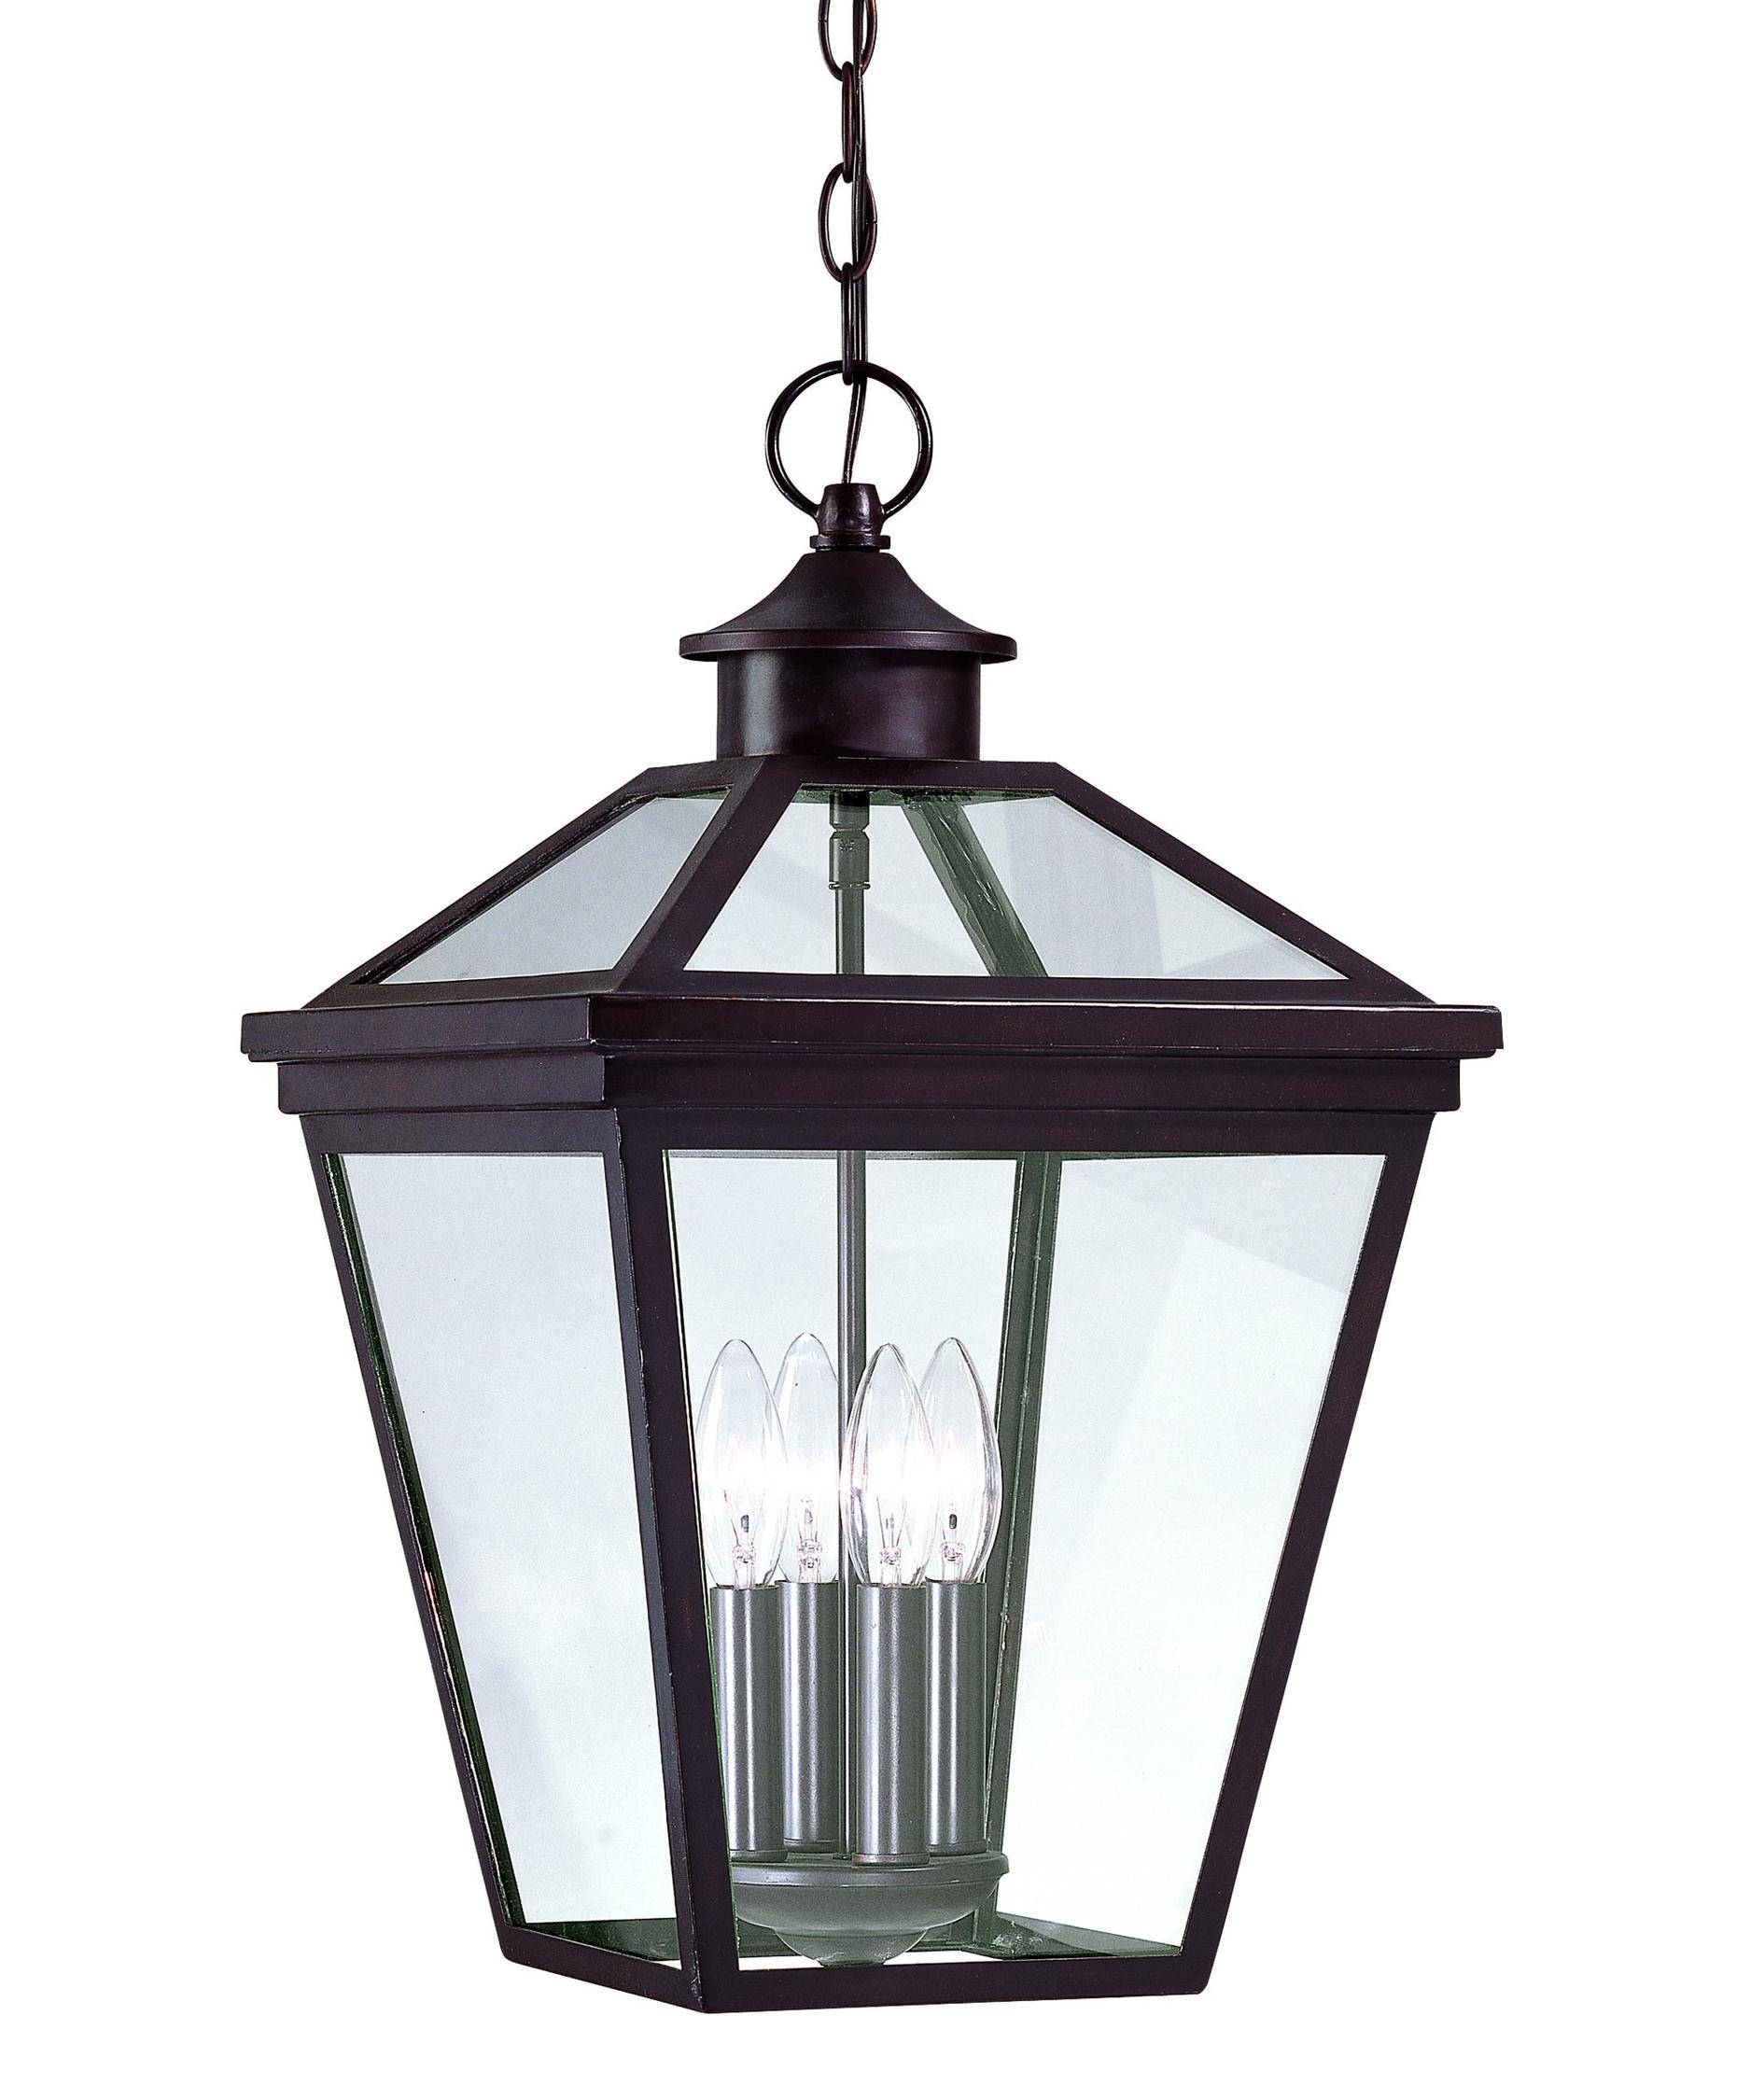 Savoy House 5-145-13 Ellijay 12 Inch Wide 4 Light Outdoor Hanging with regard to Outdoor Pendant Lighting (Image 10 of 15)